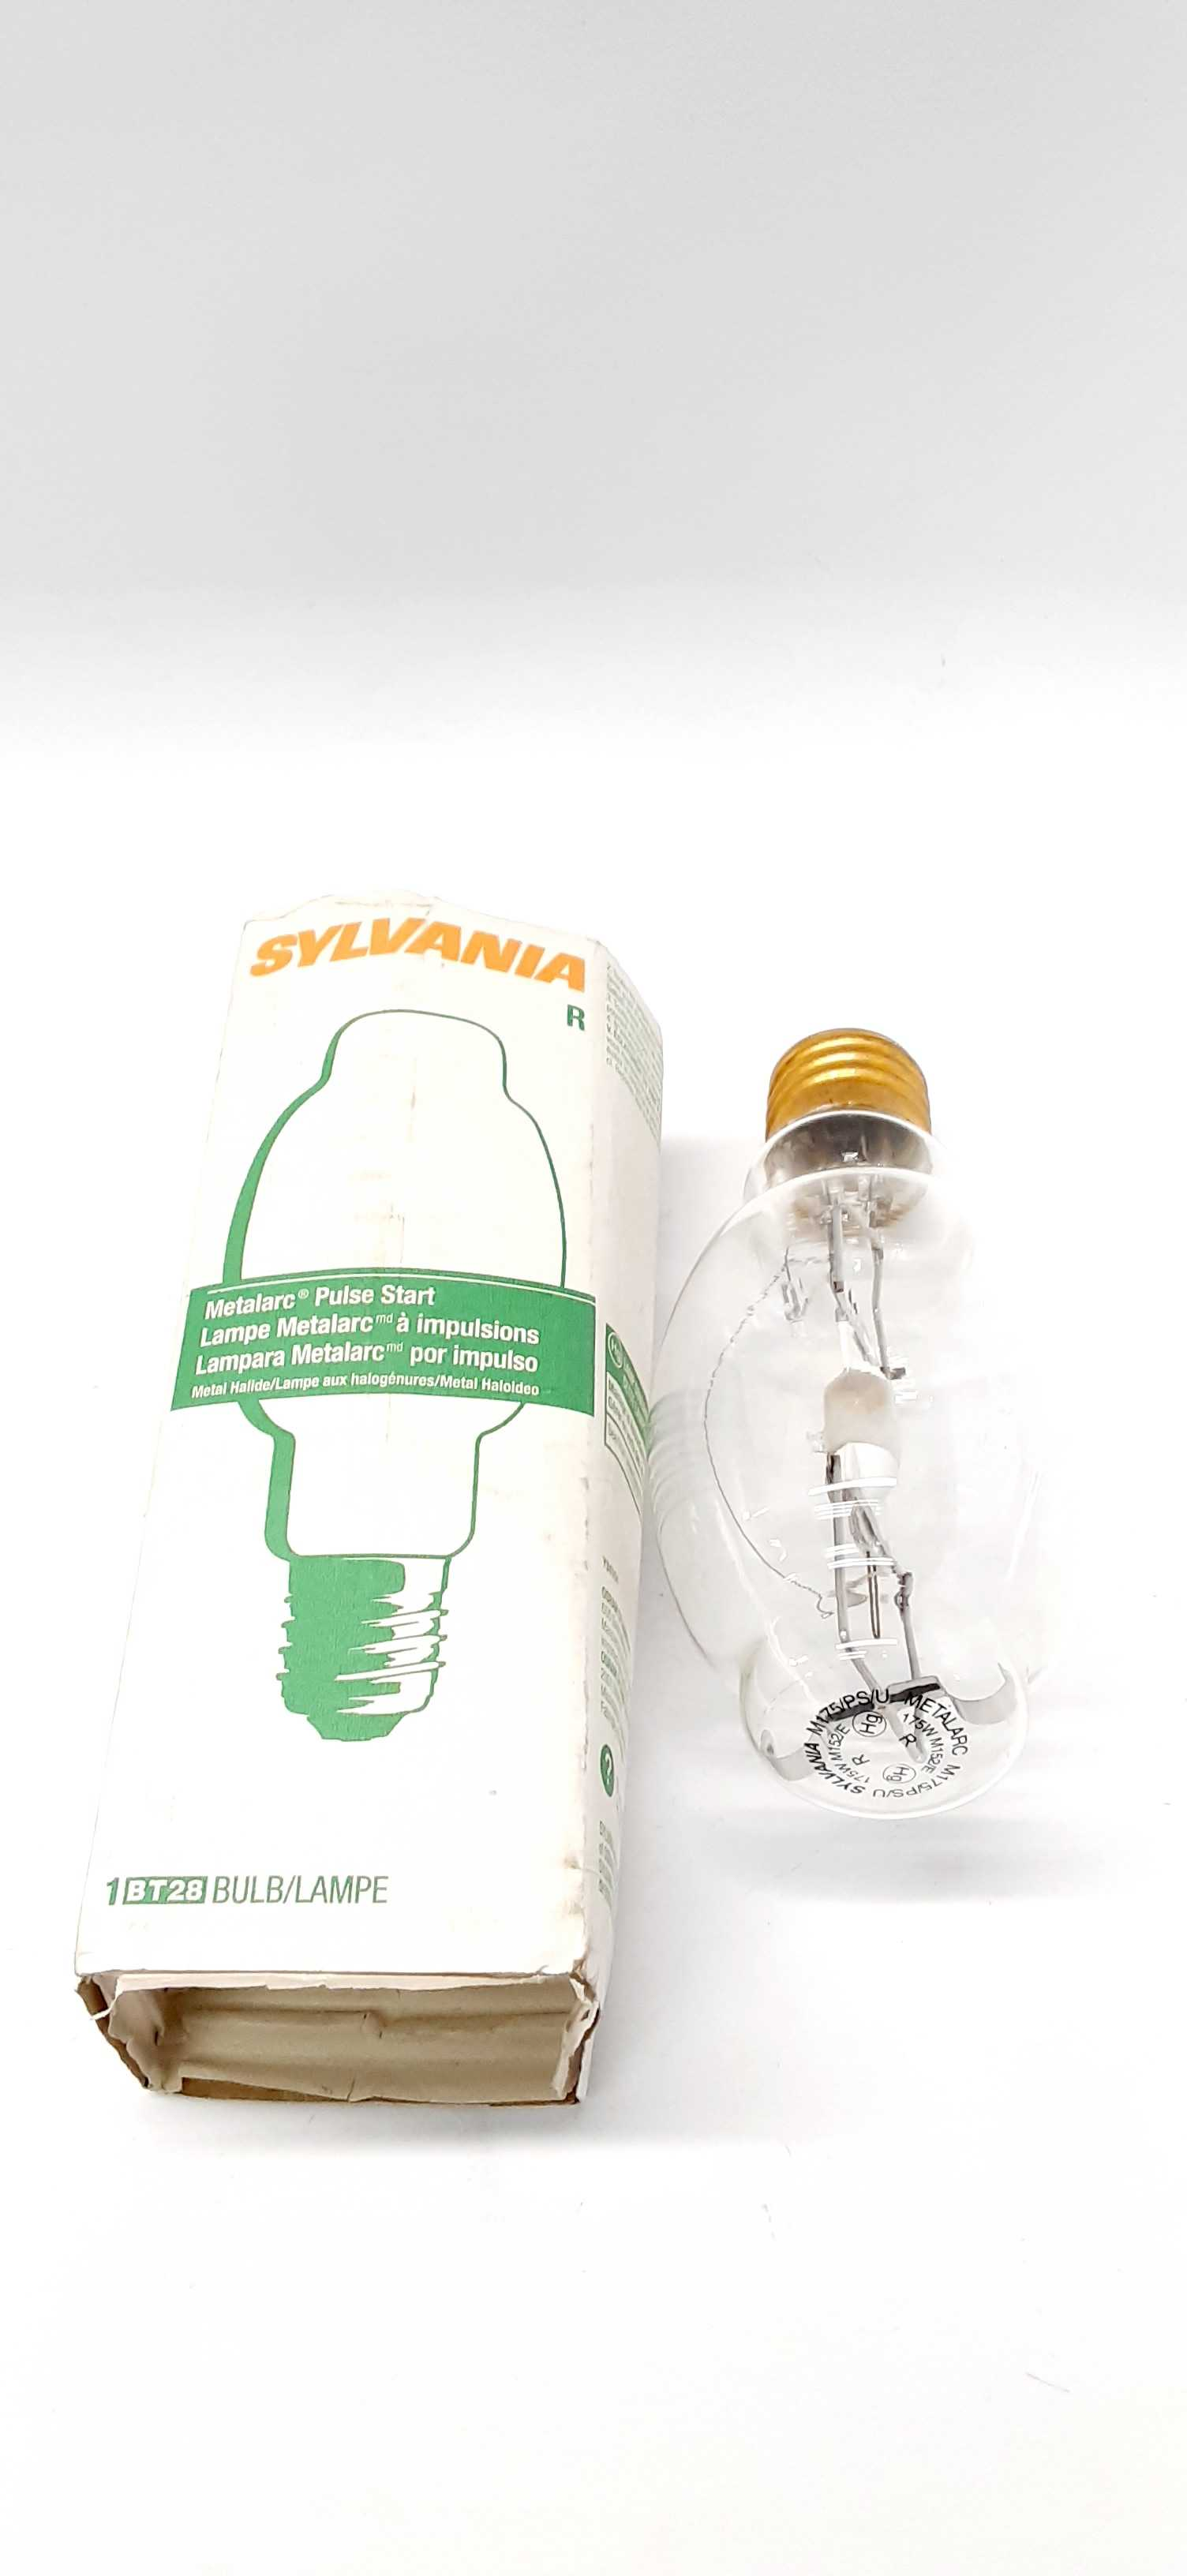 Sylvania M152/E Metal Halide Pulse Start Bulb